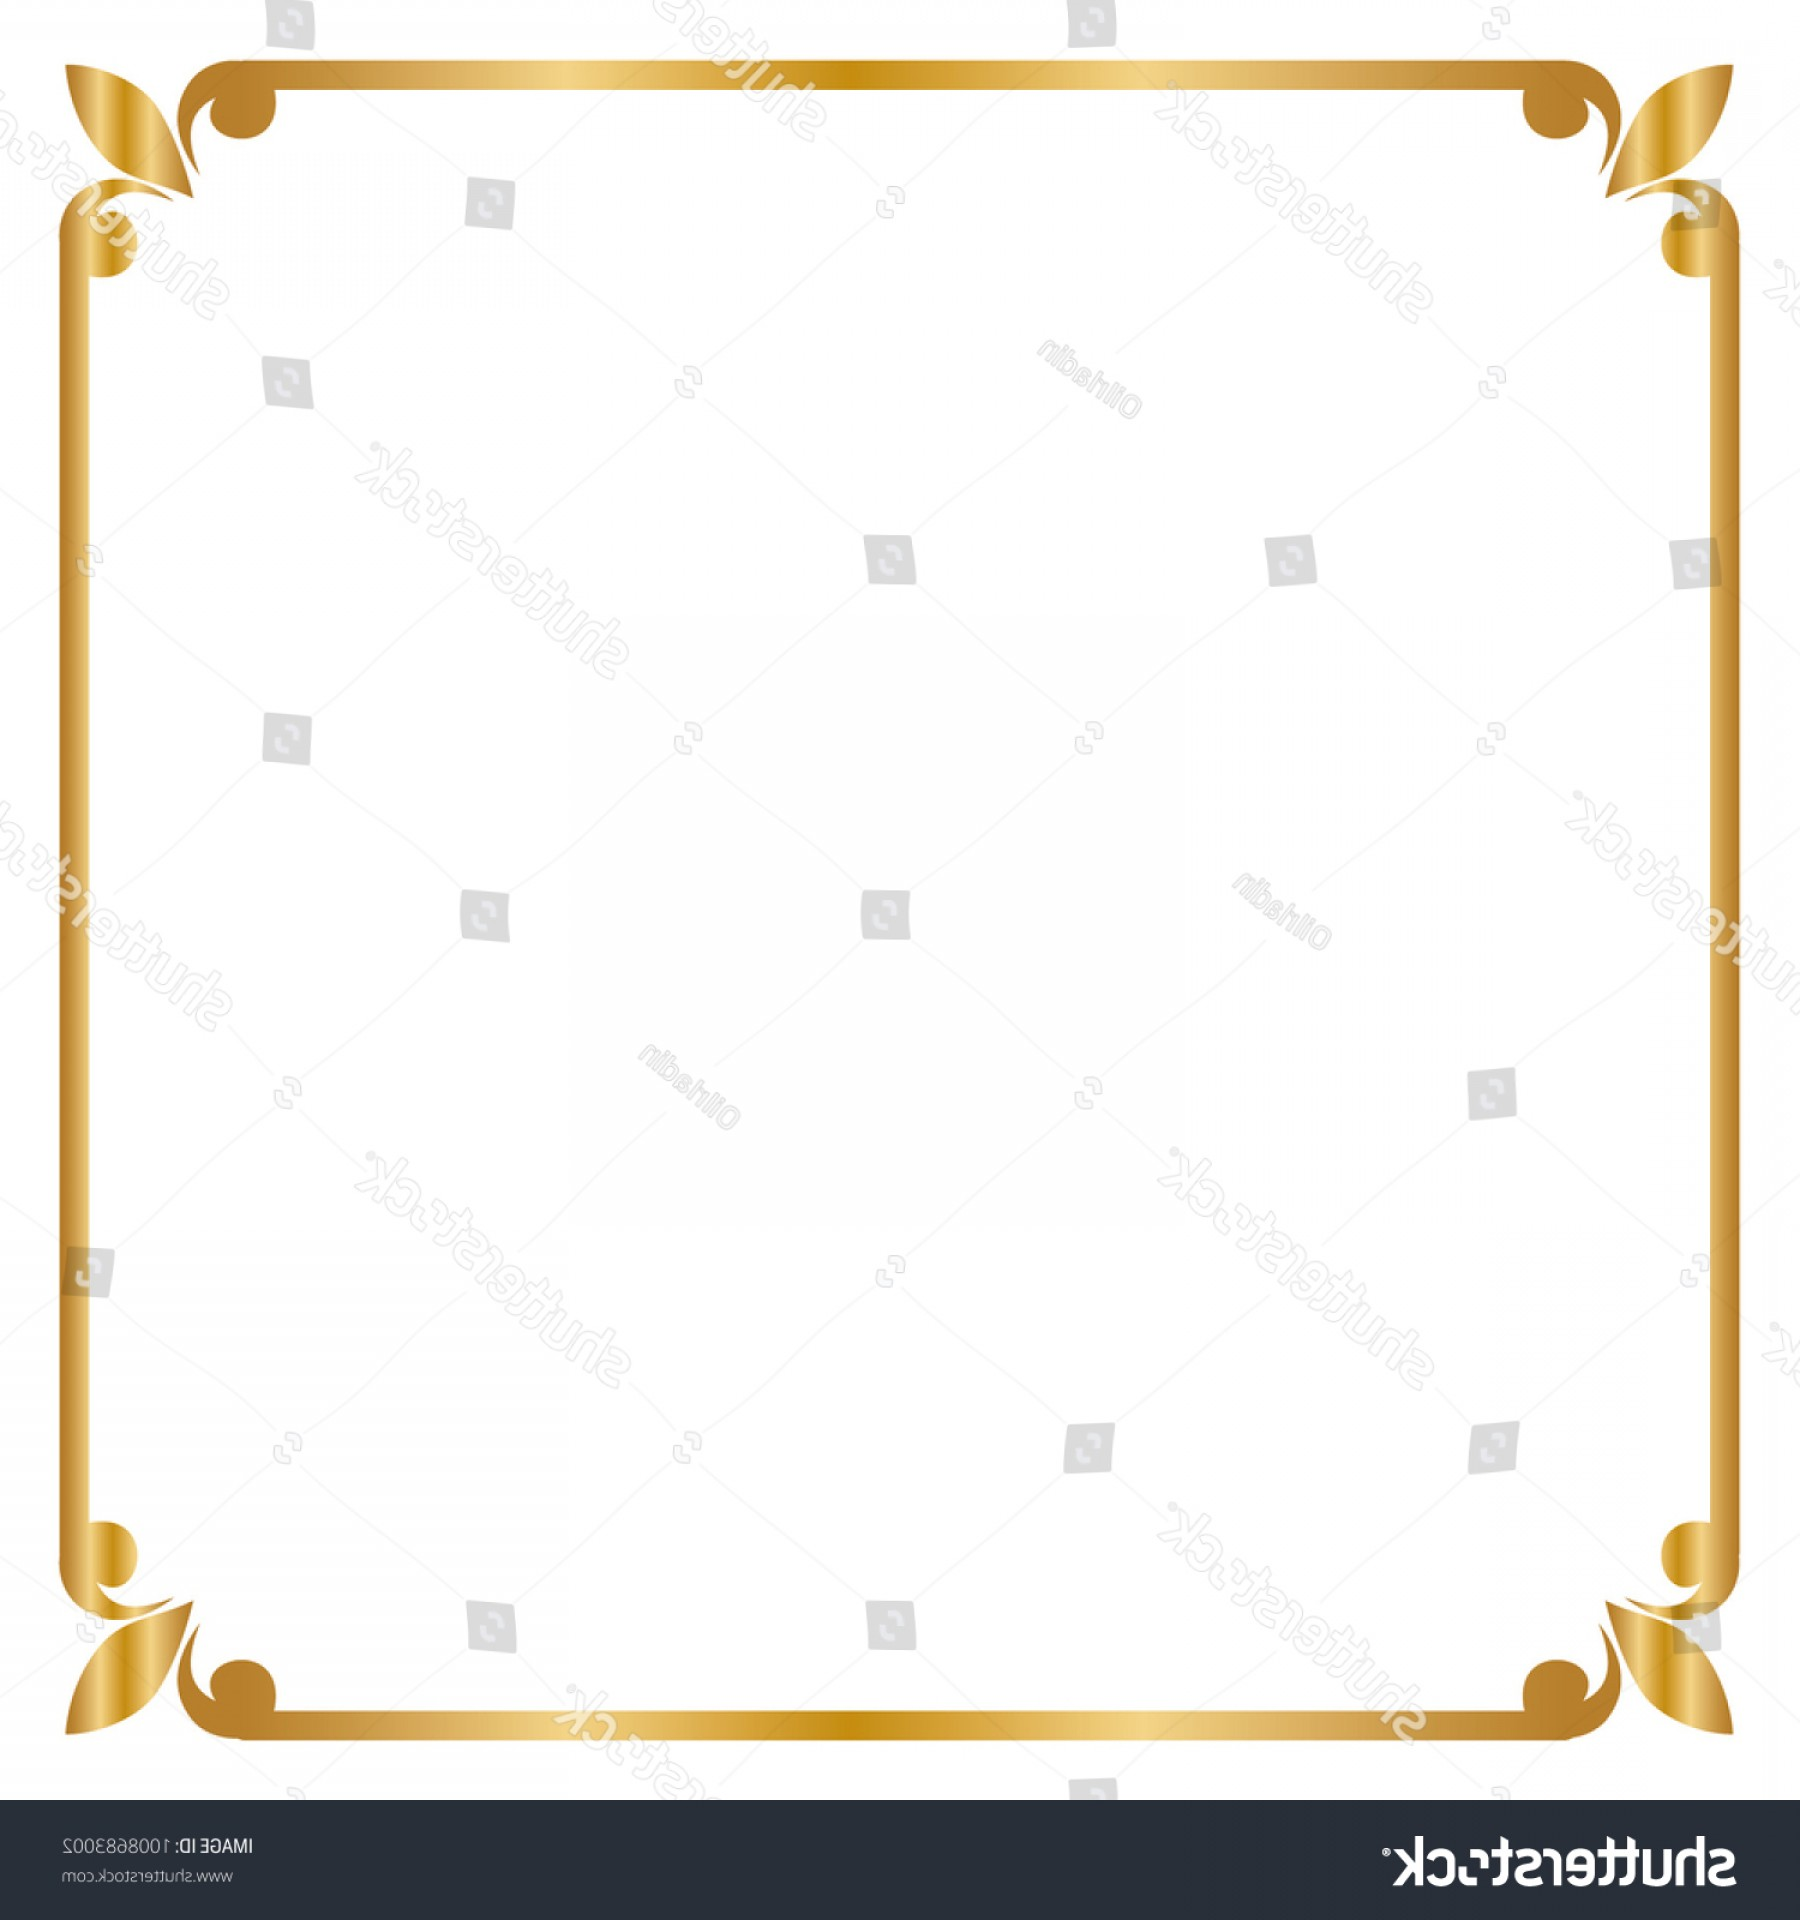 Square Gold Frame Vector PNG: Frame Border Square Golden Vector Illustration